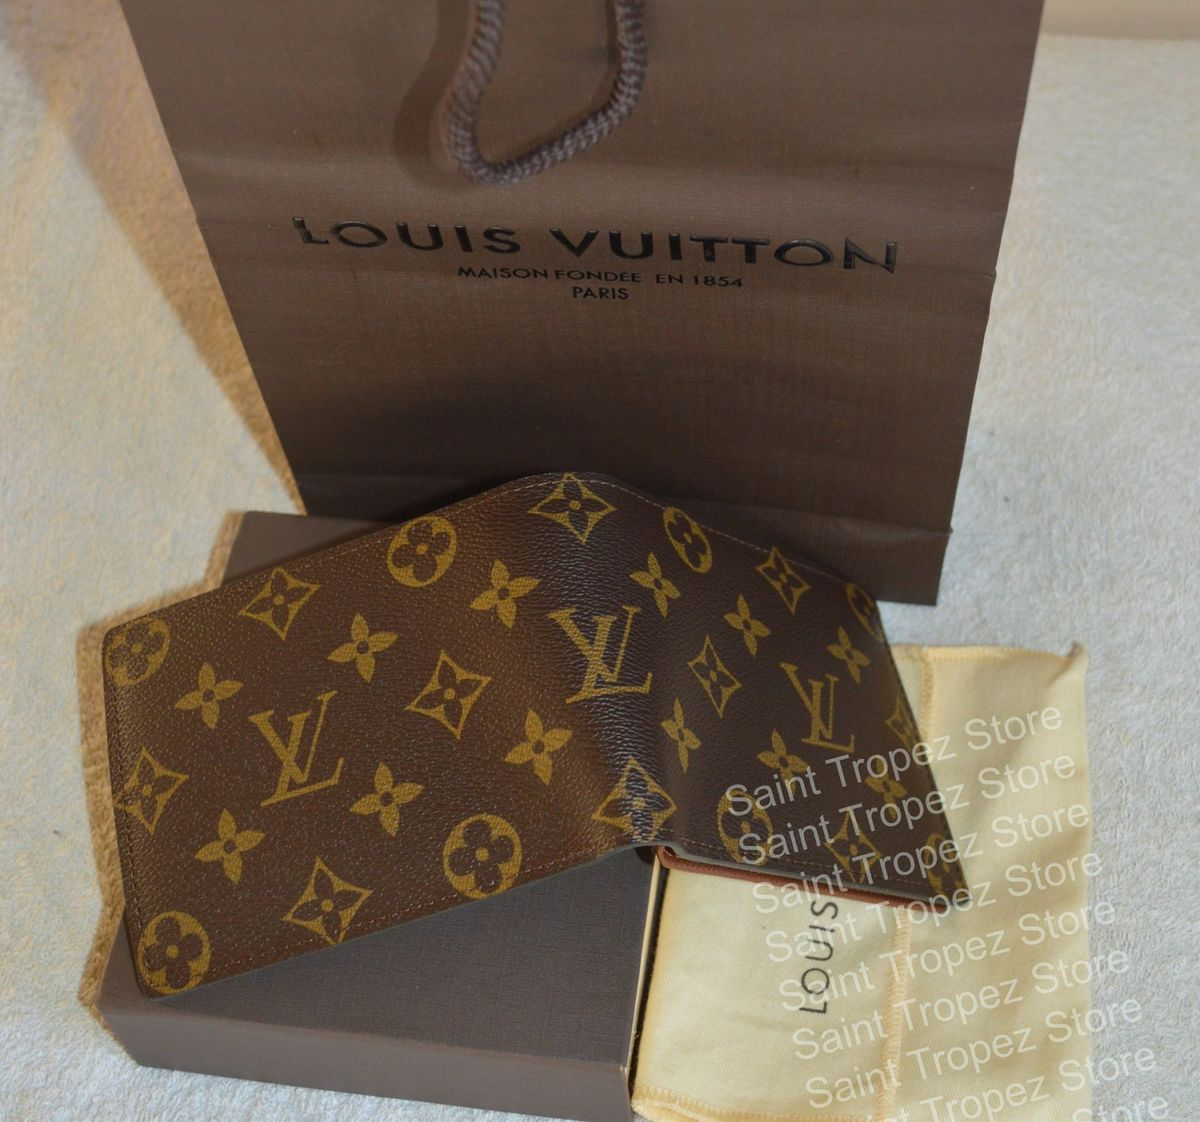 73e58bca0c9 carteira louis vuitton florin m60026 monogram canvas nova e autêntica -  carteiras louis vuitton